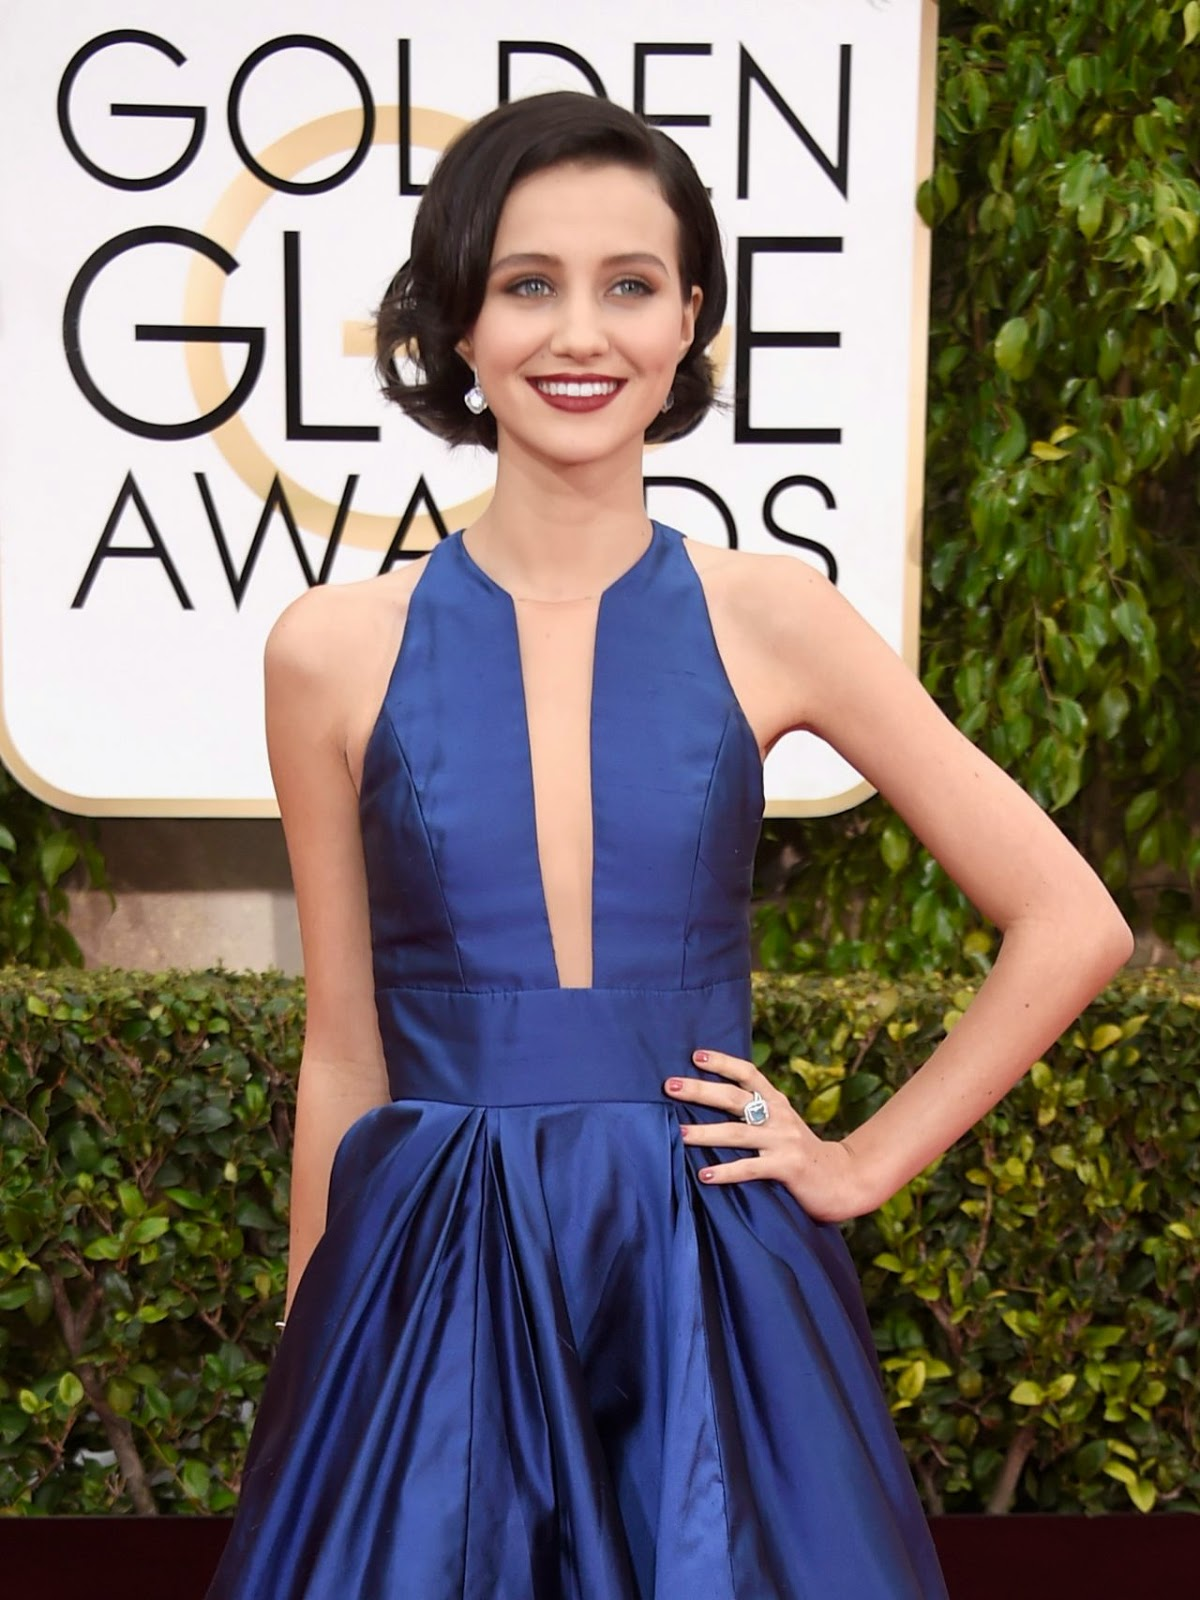 Julia Goldani Telles stuns in a ball gown at the 2015 Golden Globes